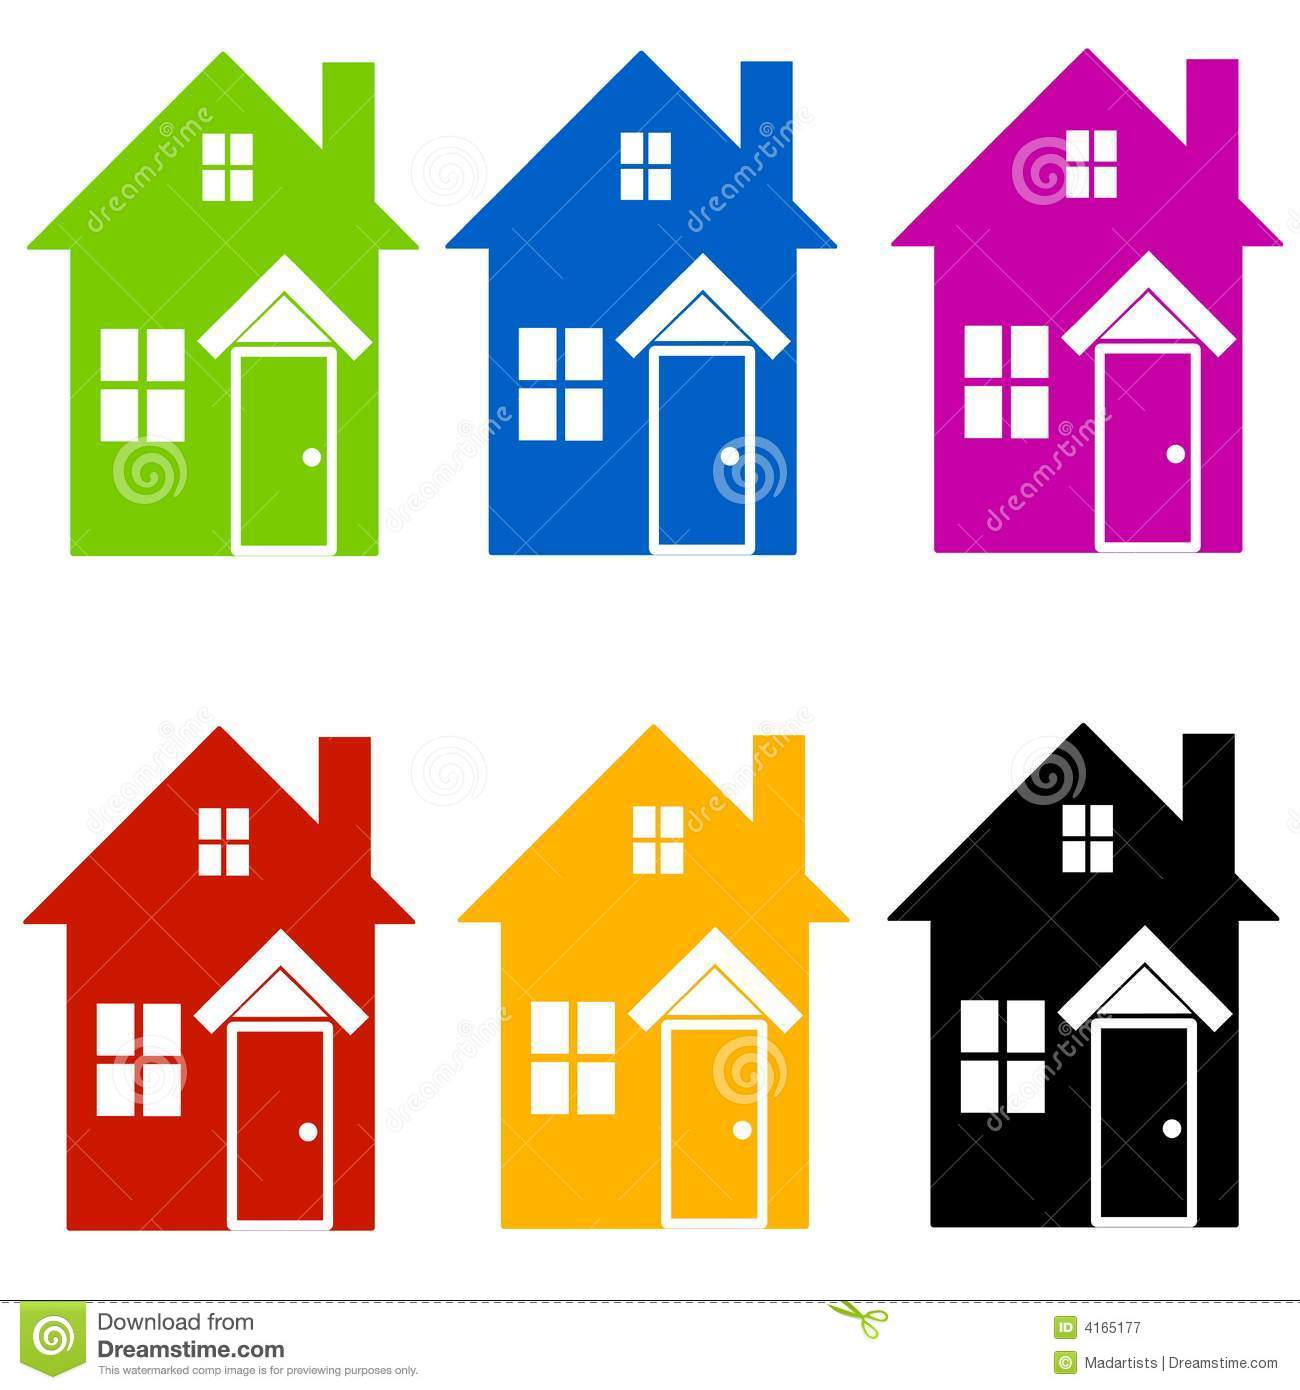 House Silhouette Graphic Clipart - Clipart Kid